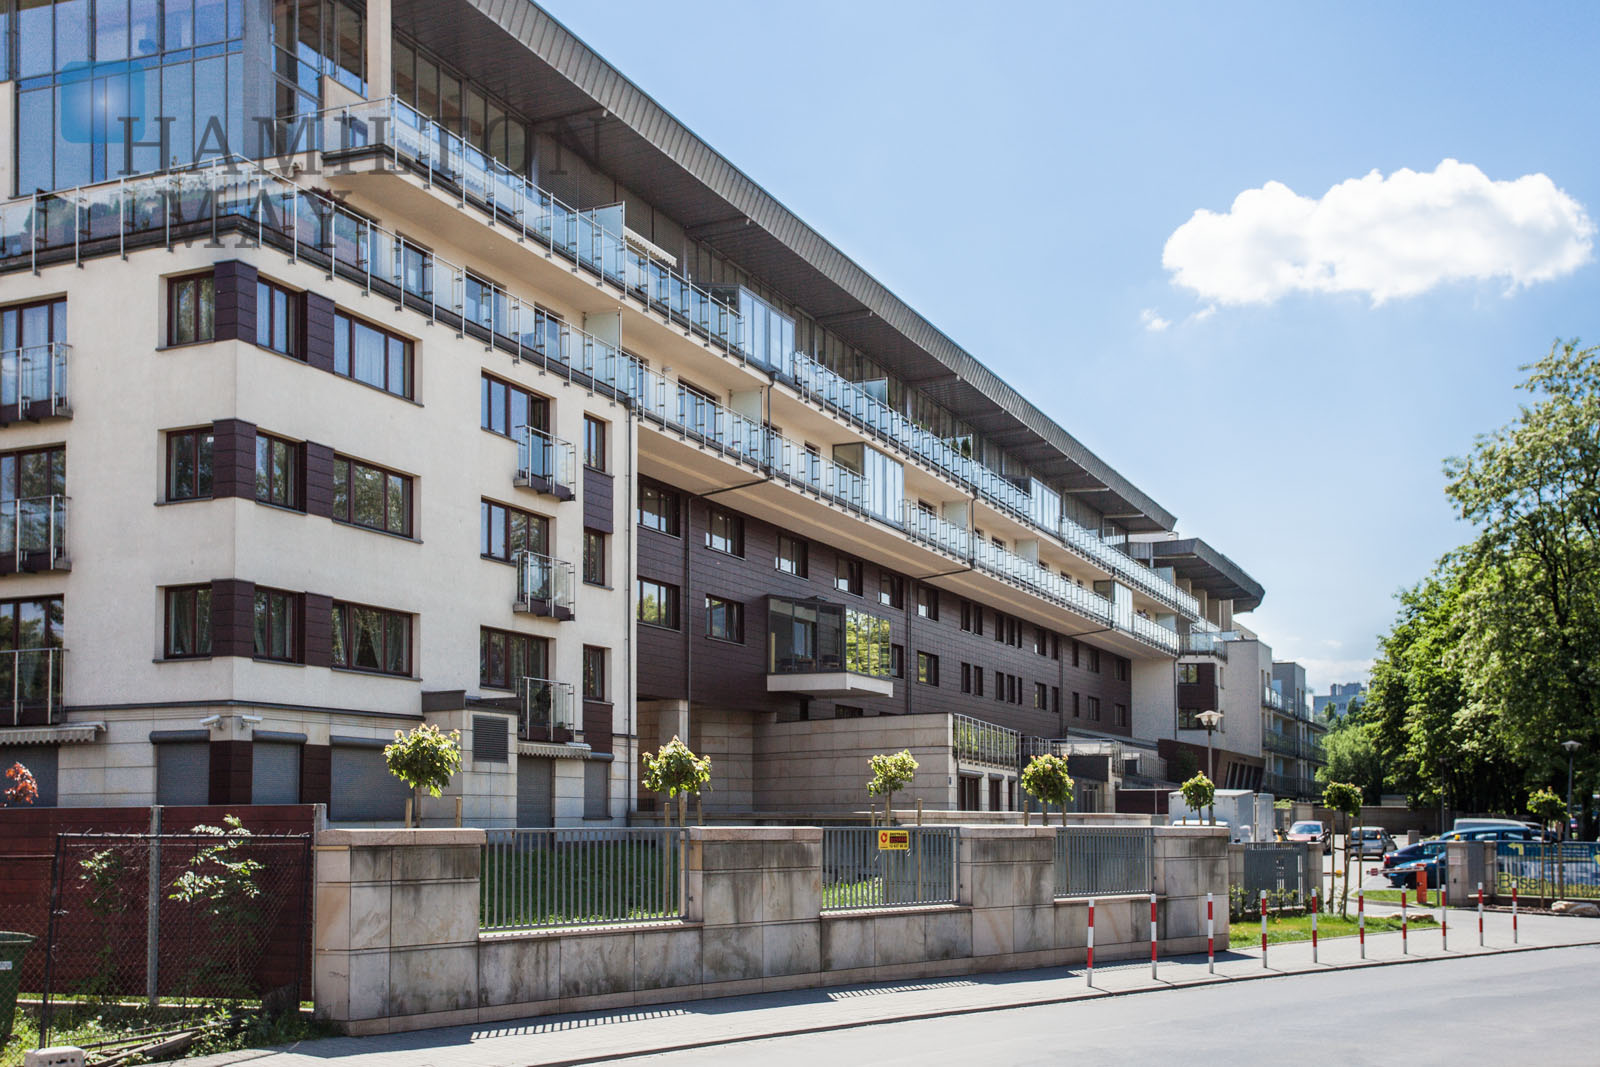 Luxurious two bedroom apartment with two balconies in the Apartamenty Ludwinów investment Krakow for rent